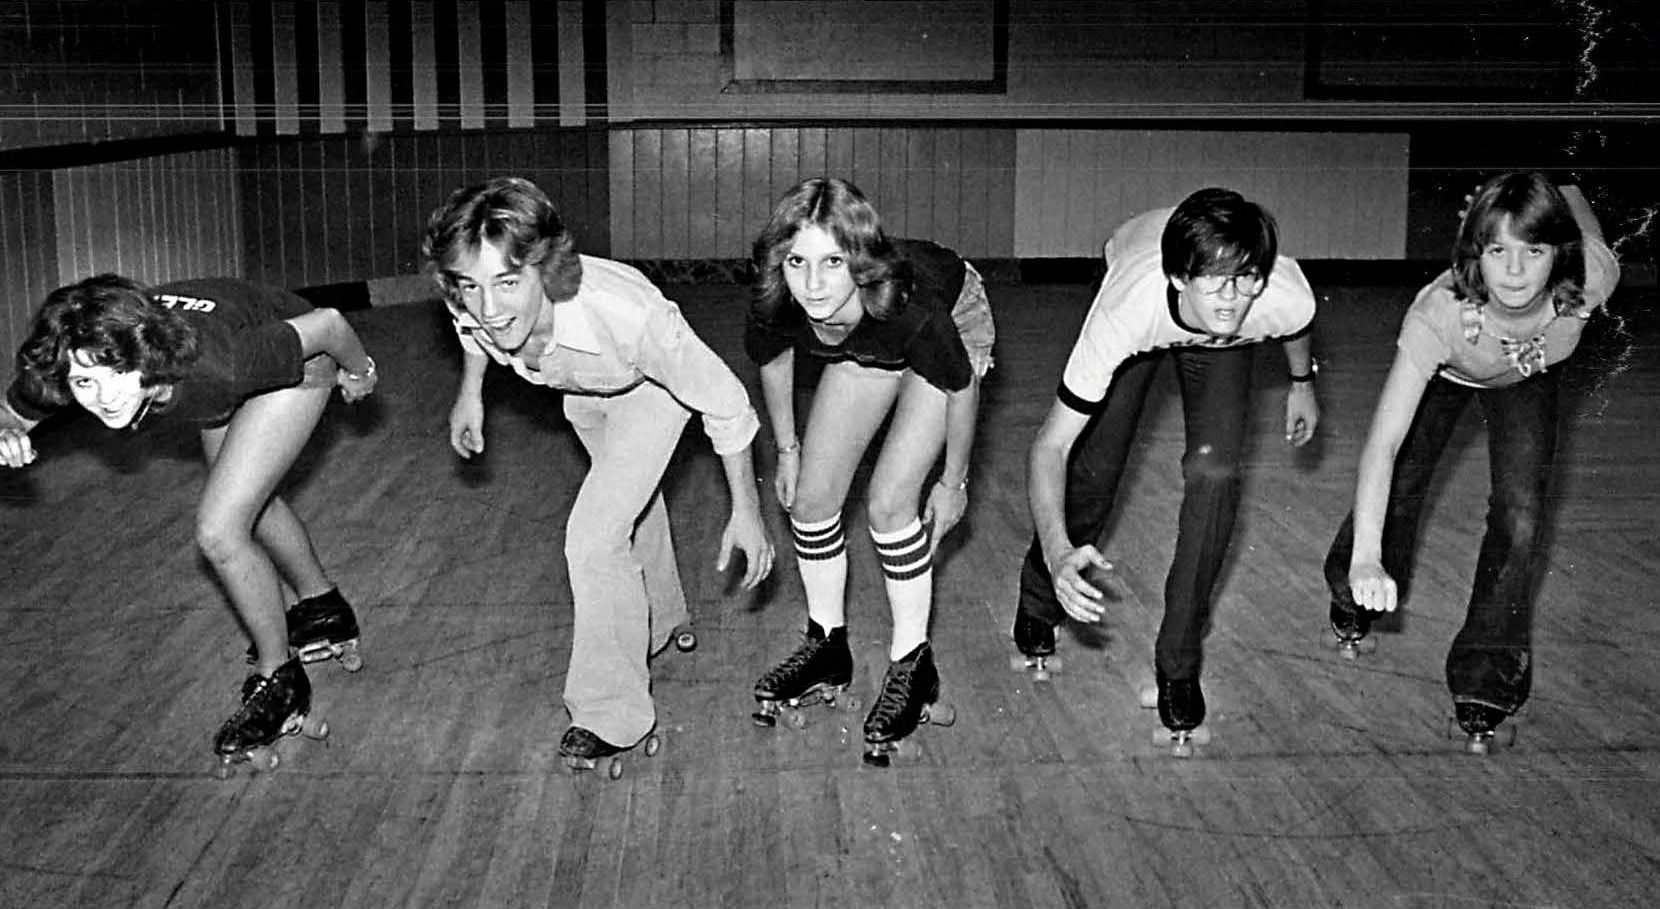 Sept. 26, 1977: From left, Glenda Green, Mike Ewton, Julie Evans, Joe Robinson and Niecie Byrum were poised for skating.